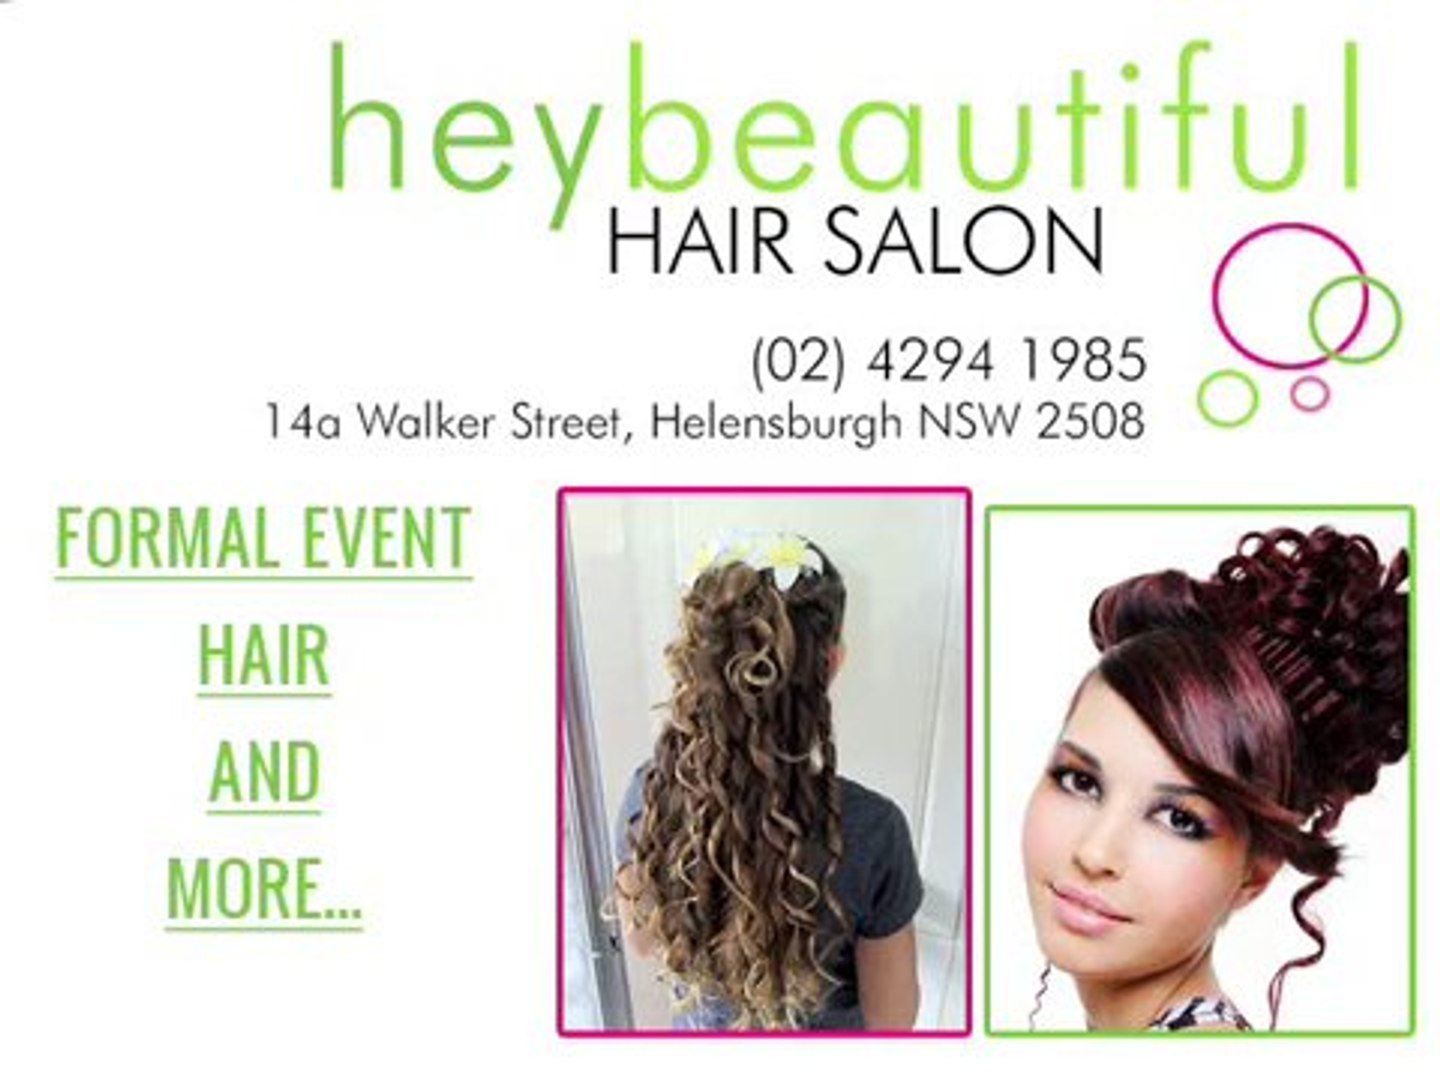 Chambre Luxe Essendon Welcome To Hey Beautiful Hair Salon In Helensburgh